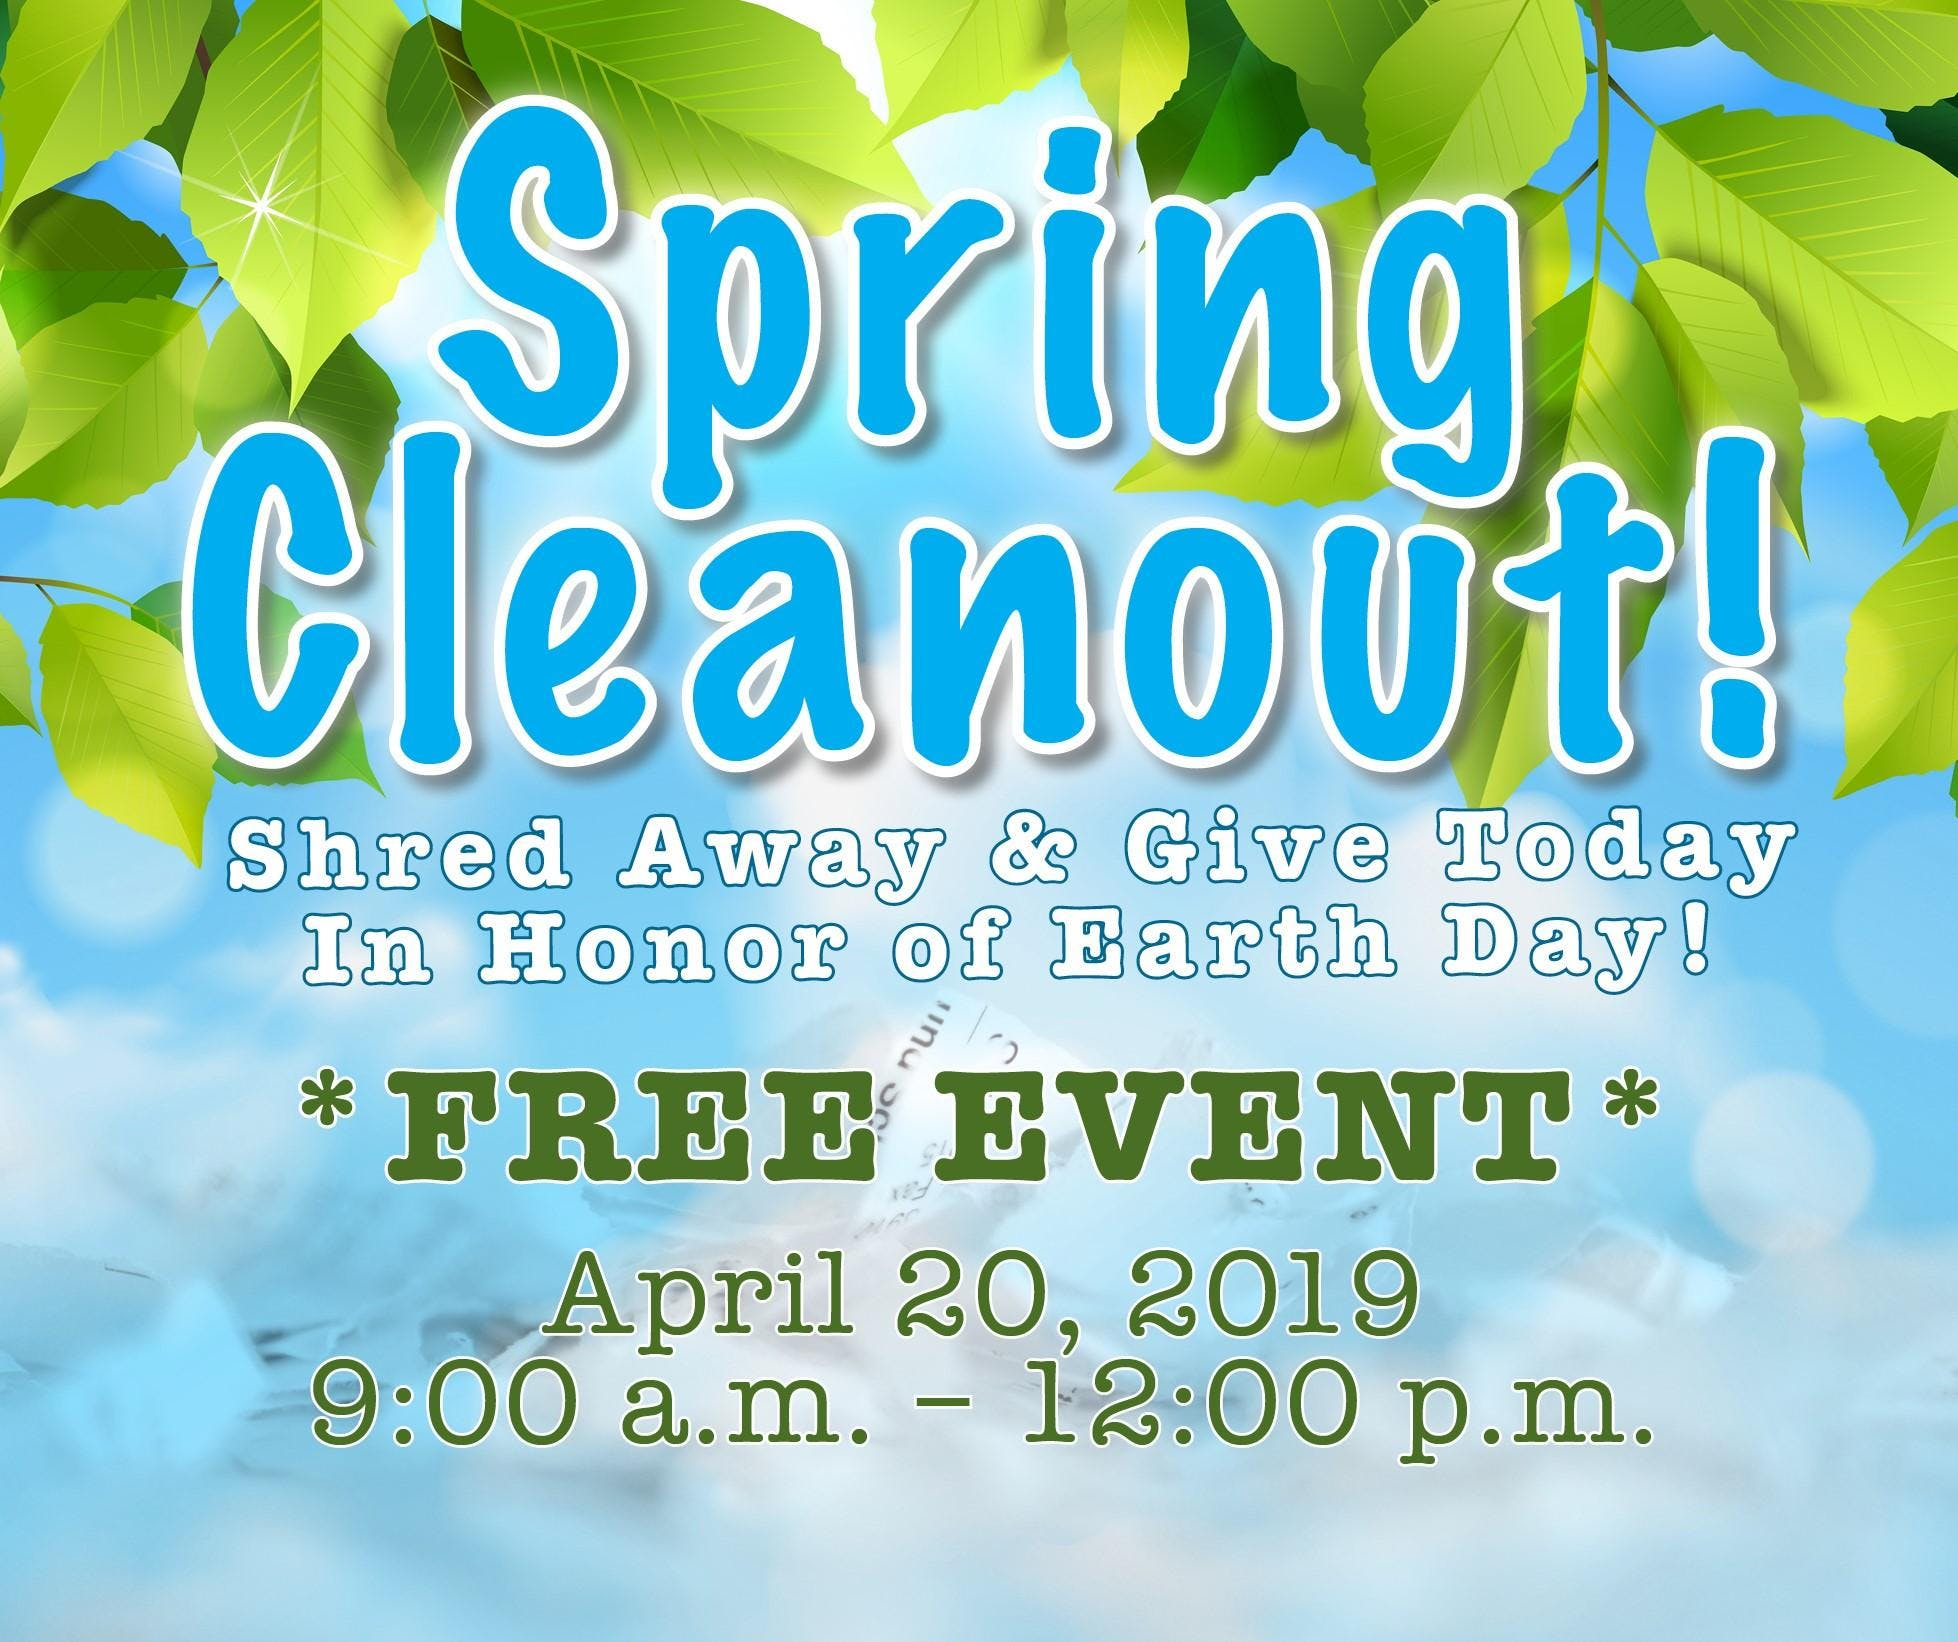 Spring Cleanout Event! Shredding & Goodwill Donations!